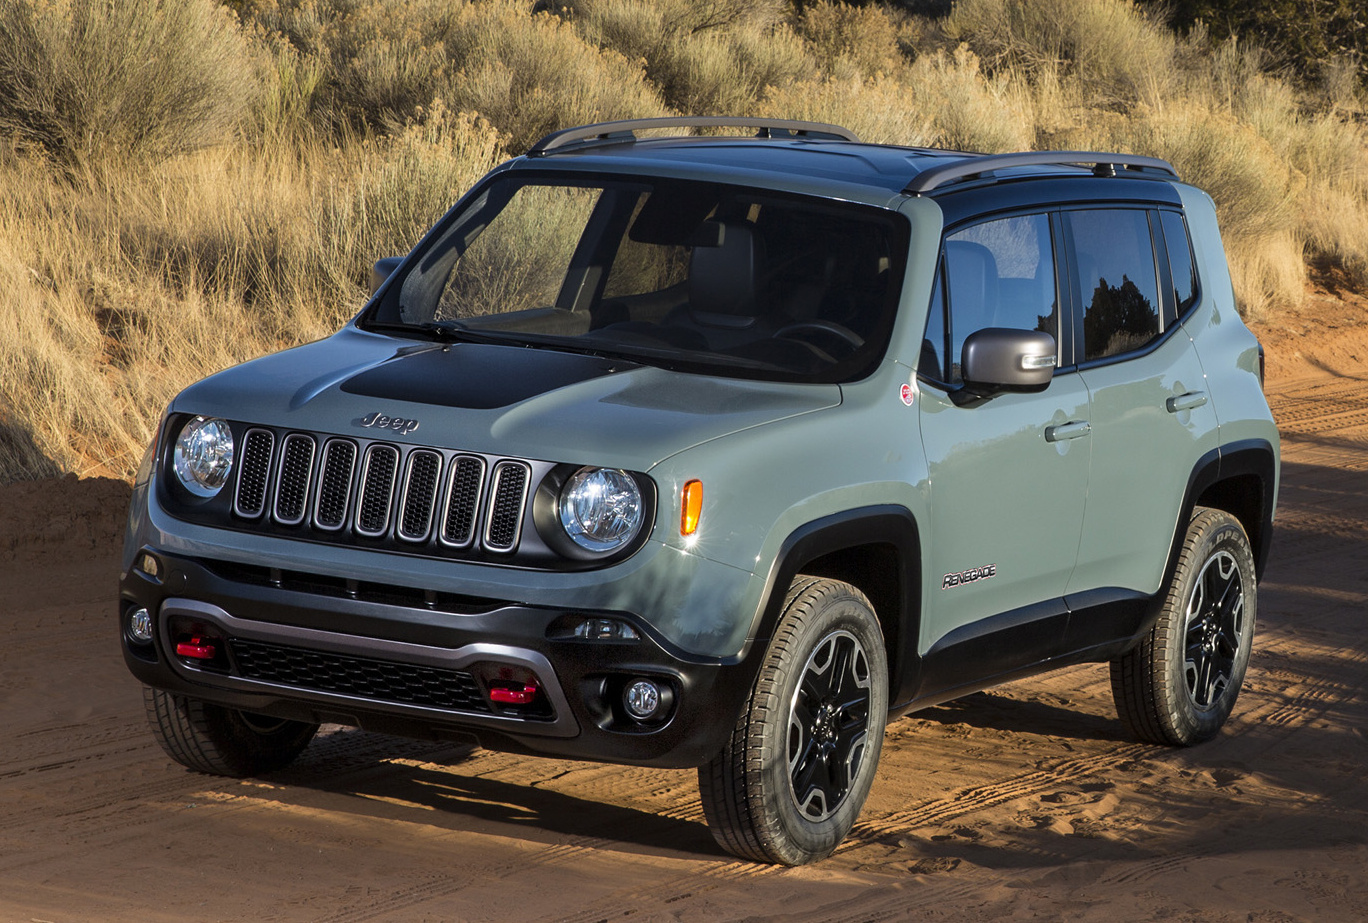 Jeep Renegade Colors 2018 >> 2015 / 2016 Jeep Renegade for Sale in your area - CarGurus